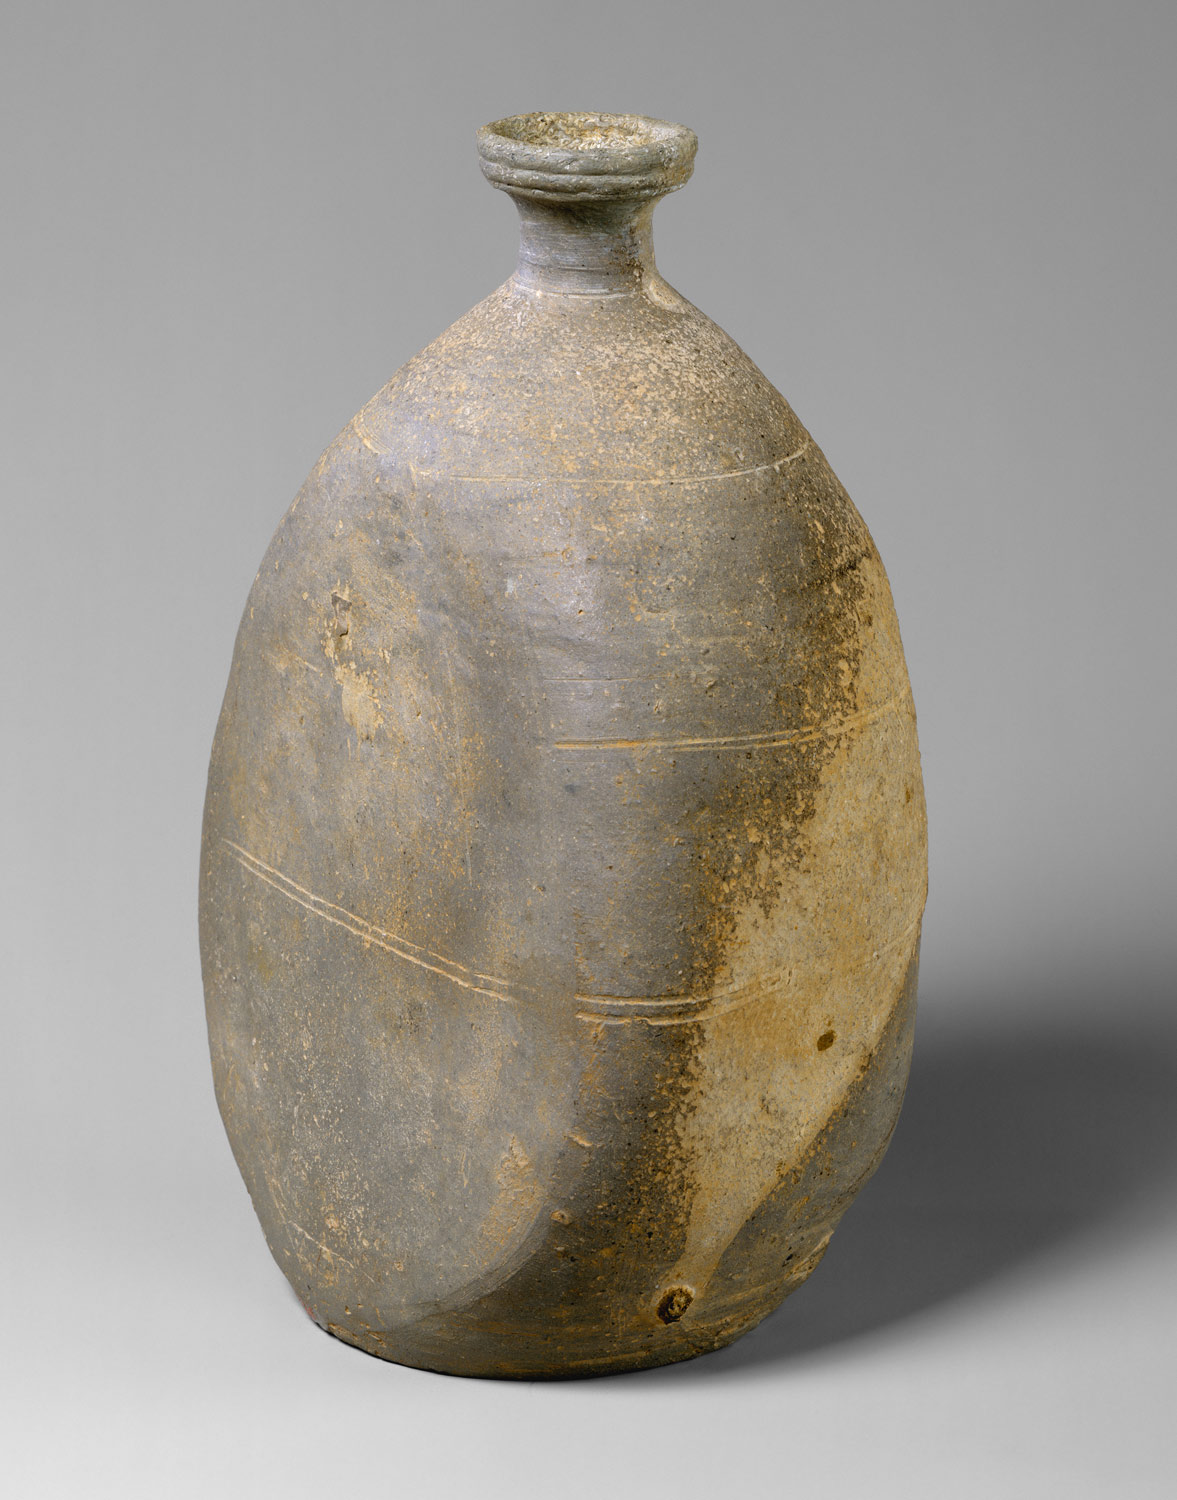 Bottle with flattened side